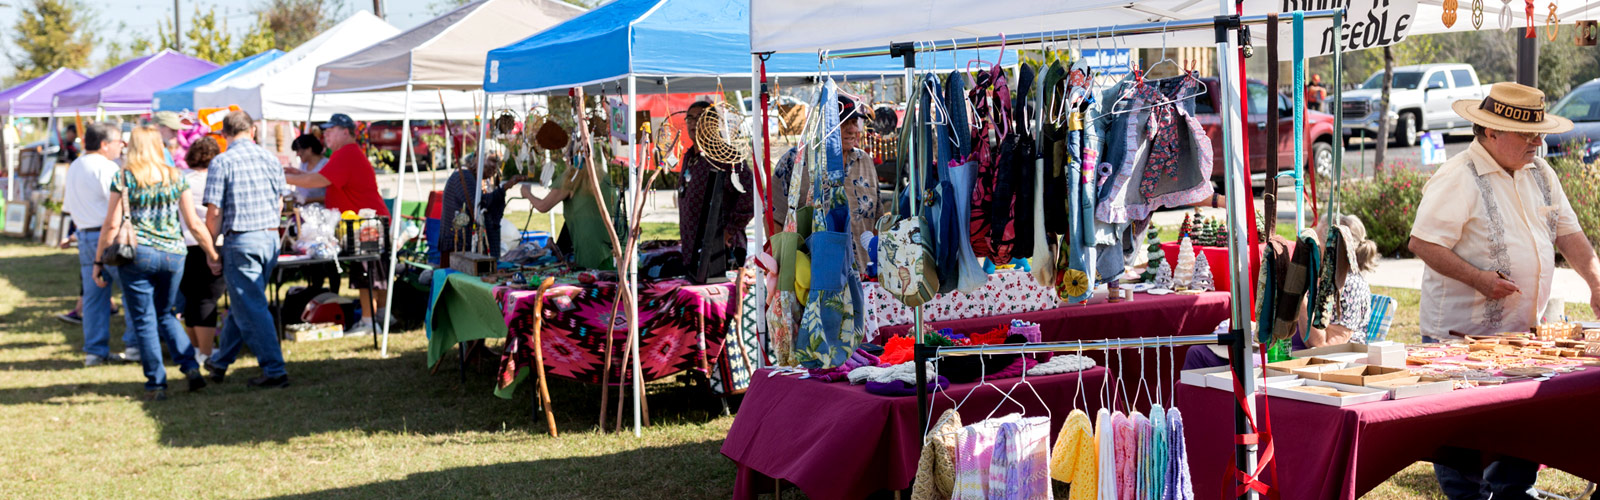 Mission Marquee > EVENTS > Farmer's & Artisan Markets